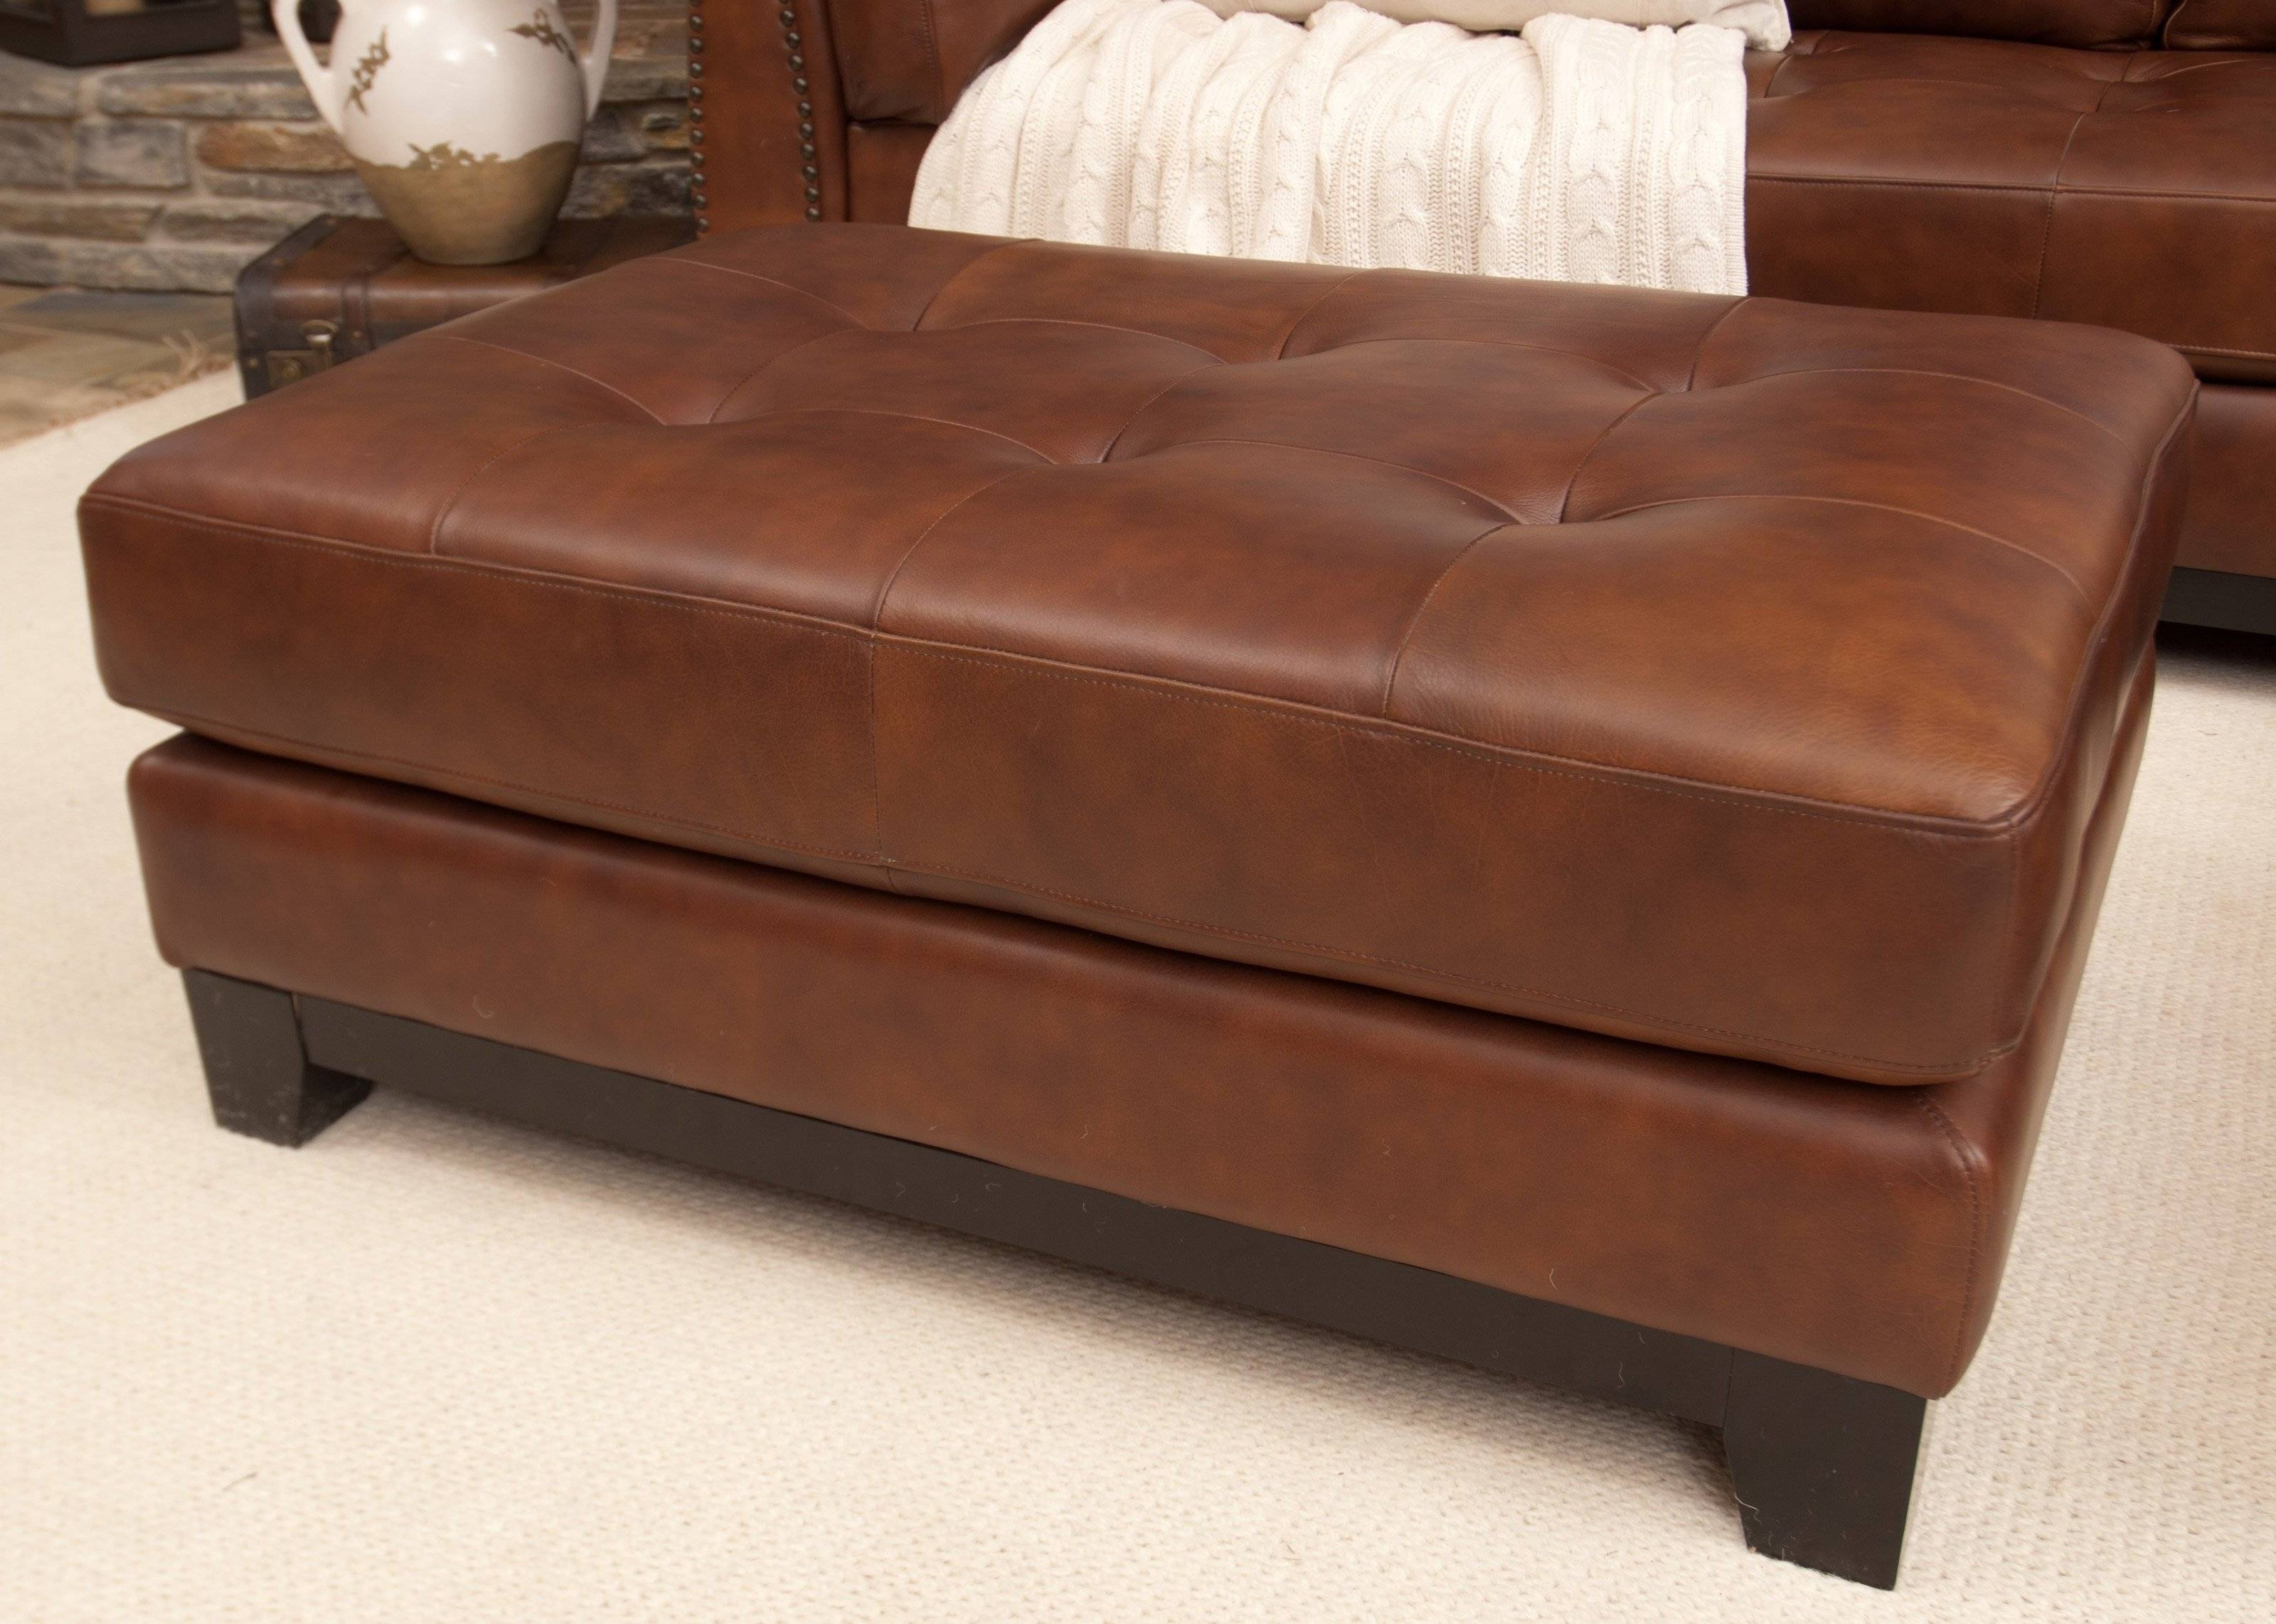 Coffee Table: Cool Leather Ottoman Coffee Table Designs Leather Within Brown Leather Ottoman Coffee Tables (View 4 of 30)